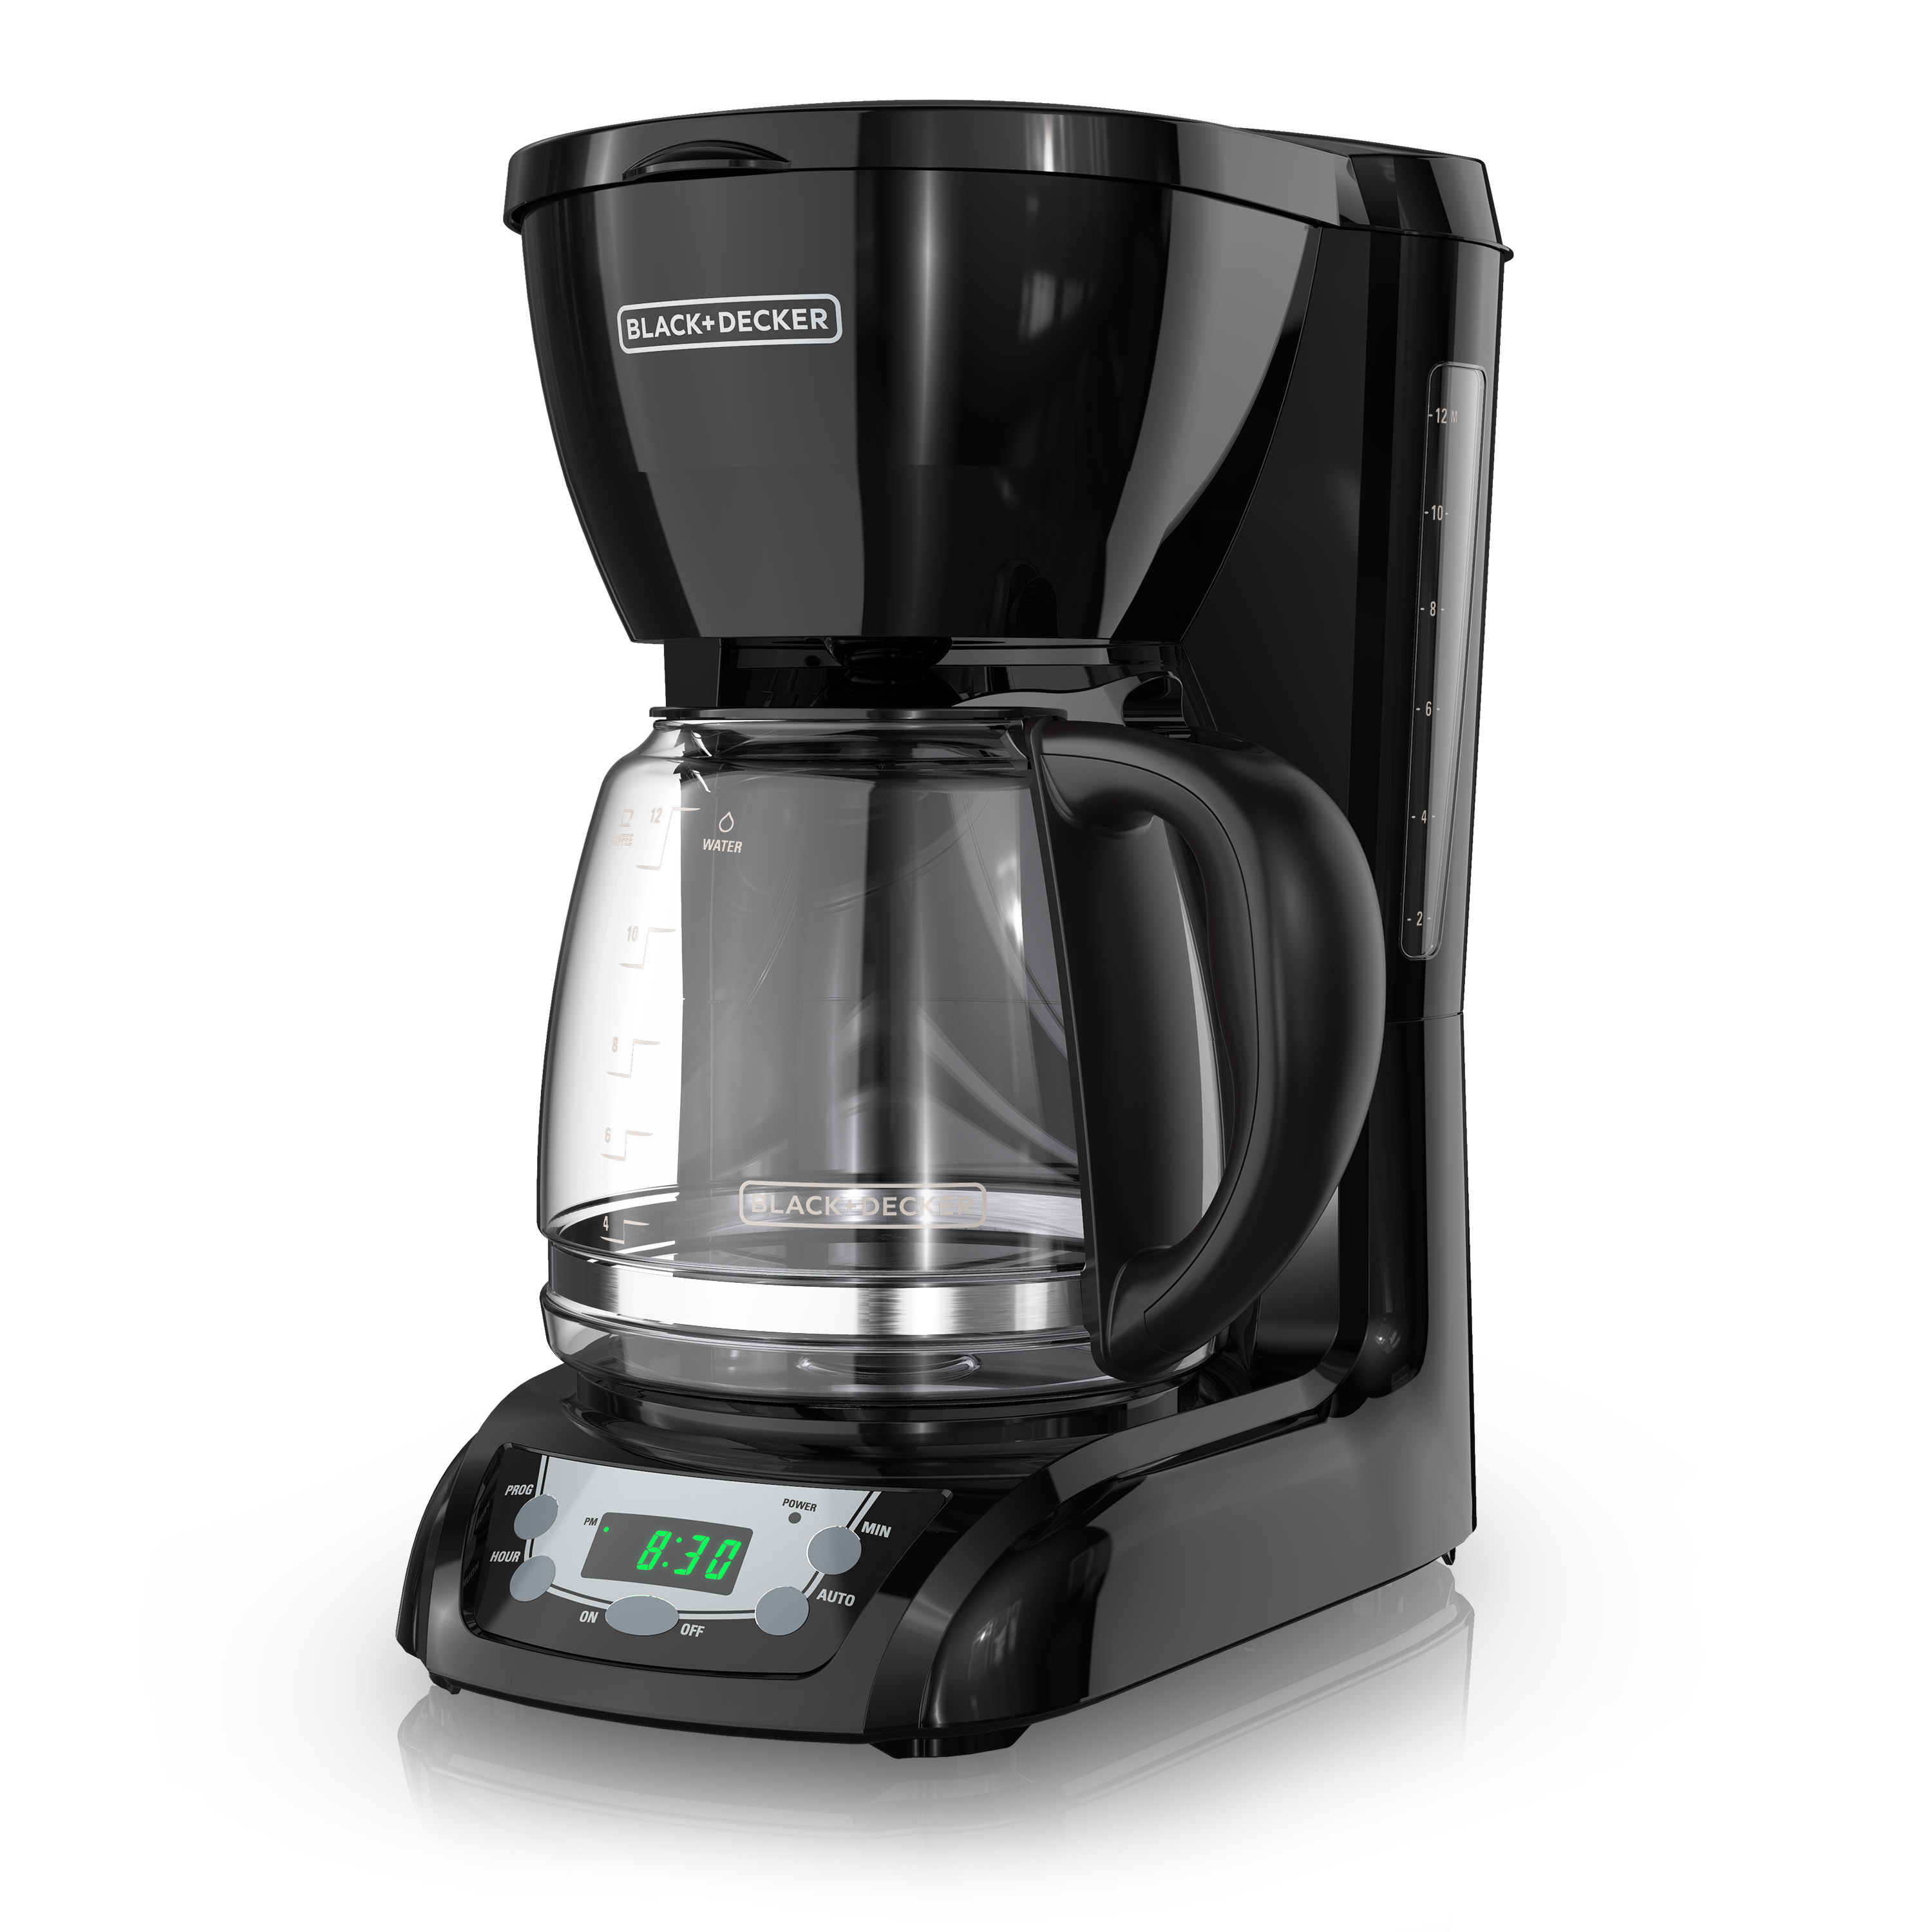 BLACK+DECKER 12-Cup* Programmable Coffeemaker, Black, DLX1050B